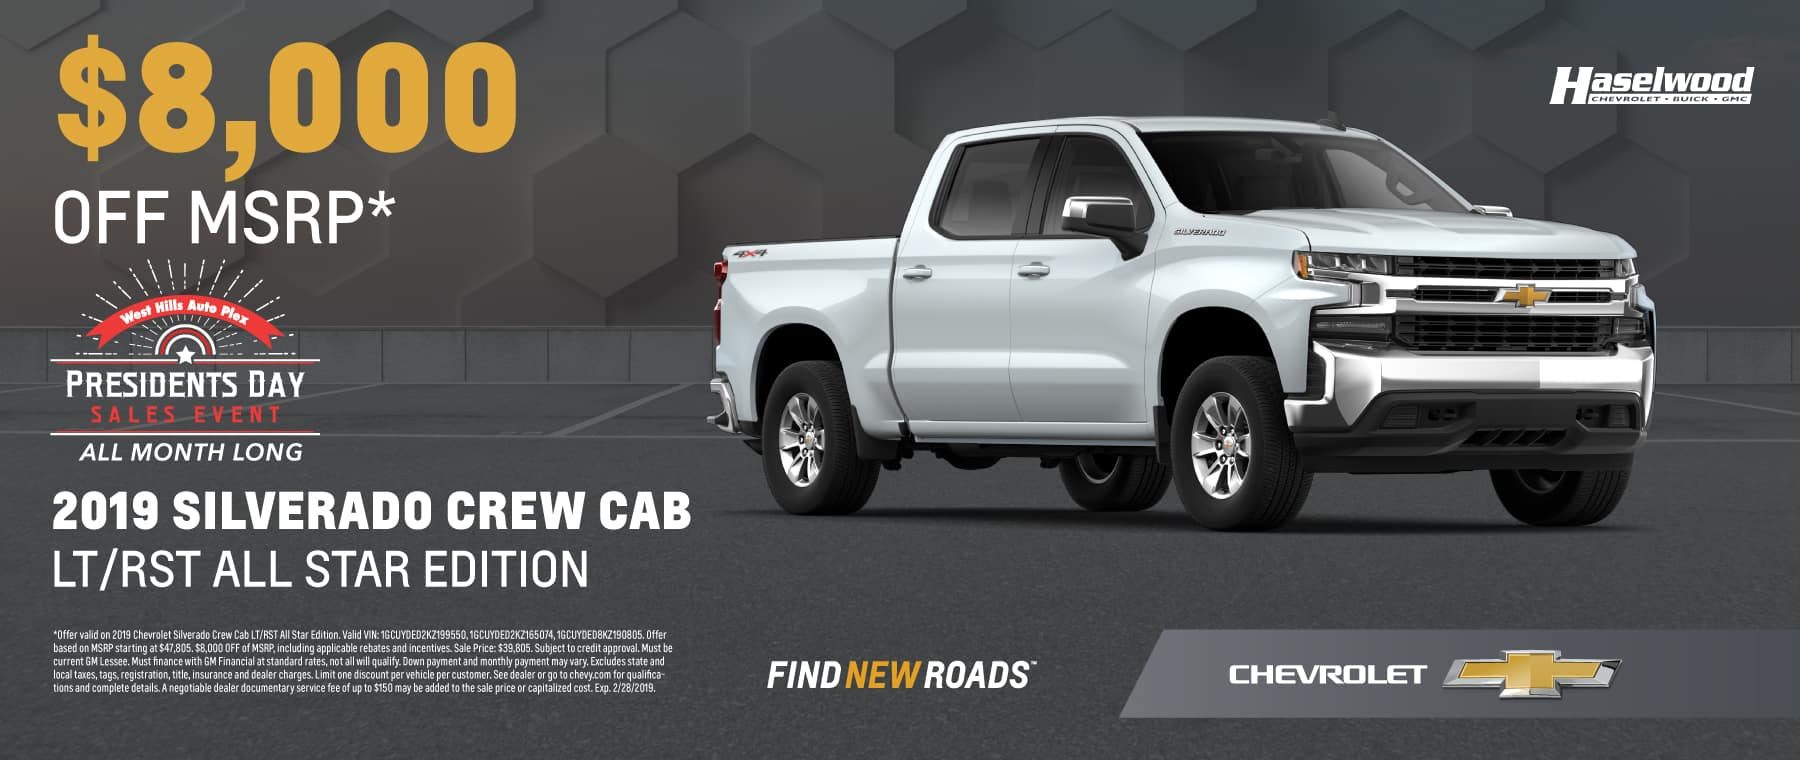 2019 Chevrolet Silverado Crew Cab LT/RST All Star Edition $8,000 OFF of MSRP*   *Offer valid on 2019 Chevrolet Silverado Crew Cab LT/RST All Star Edition. Valid VIN: 1GCUYDED2KZ199550, 1GCUYDED2KZ165074, 1GCUYDED8KZ190805. Offer based on MSRP starting at $47,805. $8,000 OFF of MSRP, including applicable rebates and incentives. Sale Price: $39,805. Subject to credit approval. Must be current GM Lessee. Must finance with GM Financial at standard rates, not all will qualify. Down payment and monthly payment may vary. Excludes state and local taxes, tags, registration, title, insurance and dealer charges. Limit one discount per vehicle per customer. See dealer or go to chevy.com for qualifications and complete details. A negotiable dealer documentary service fee of up to $150 may be added to the sale price or capitalized cost. Exp. 2/28/2019.